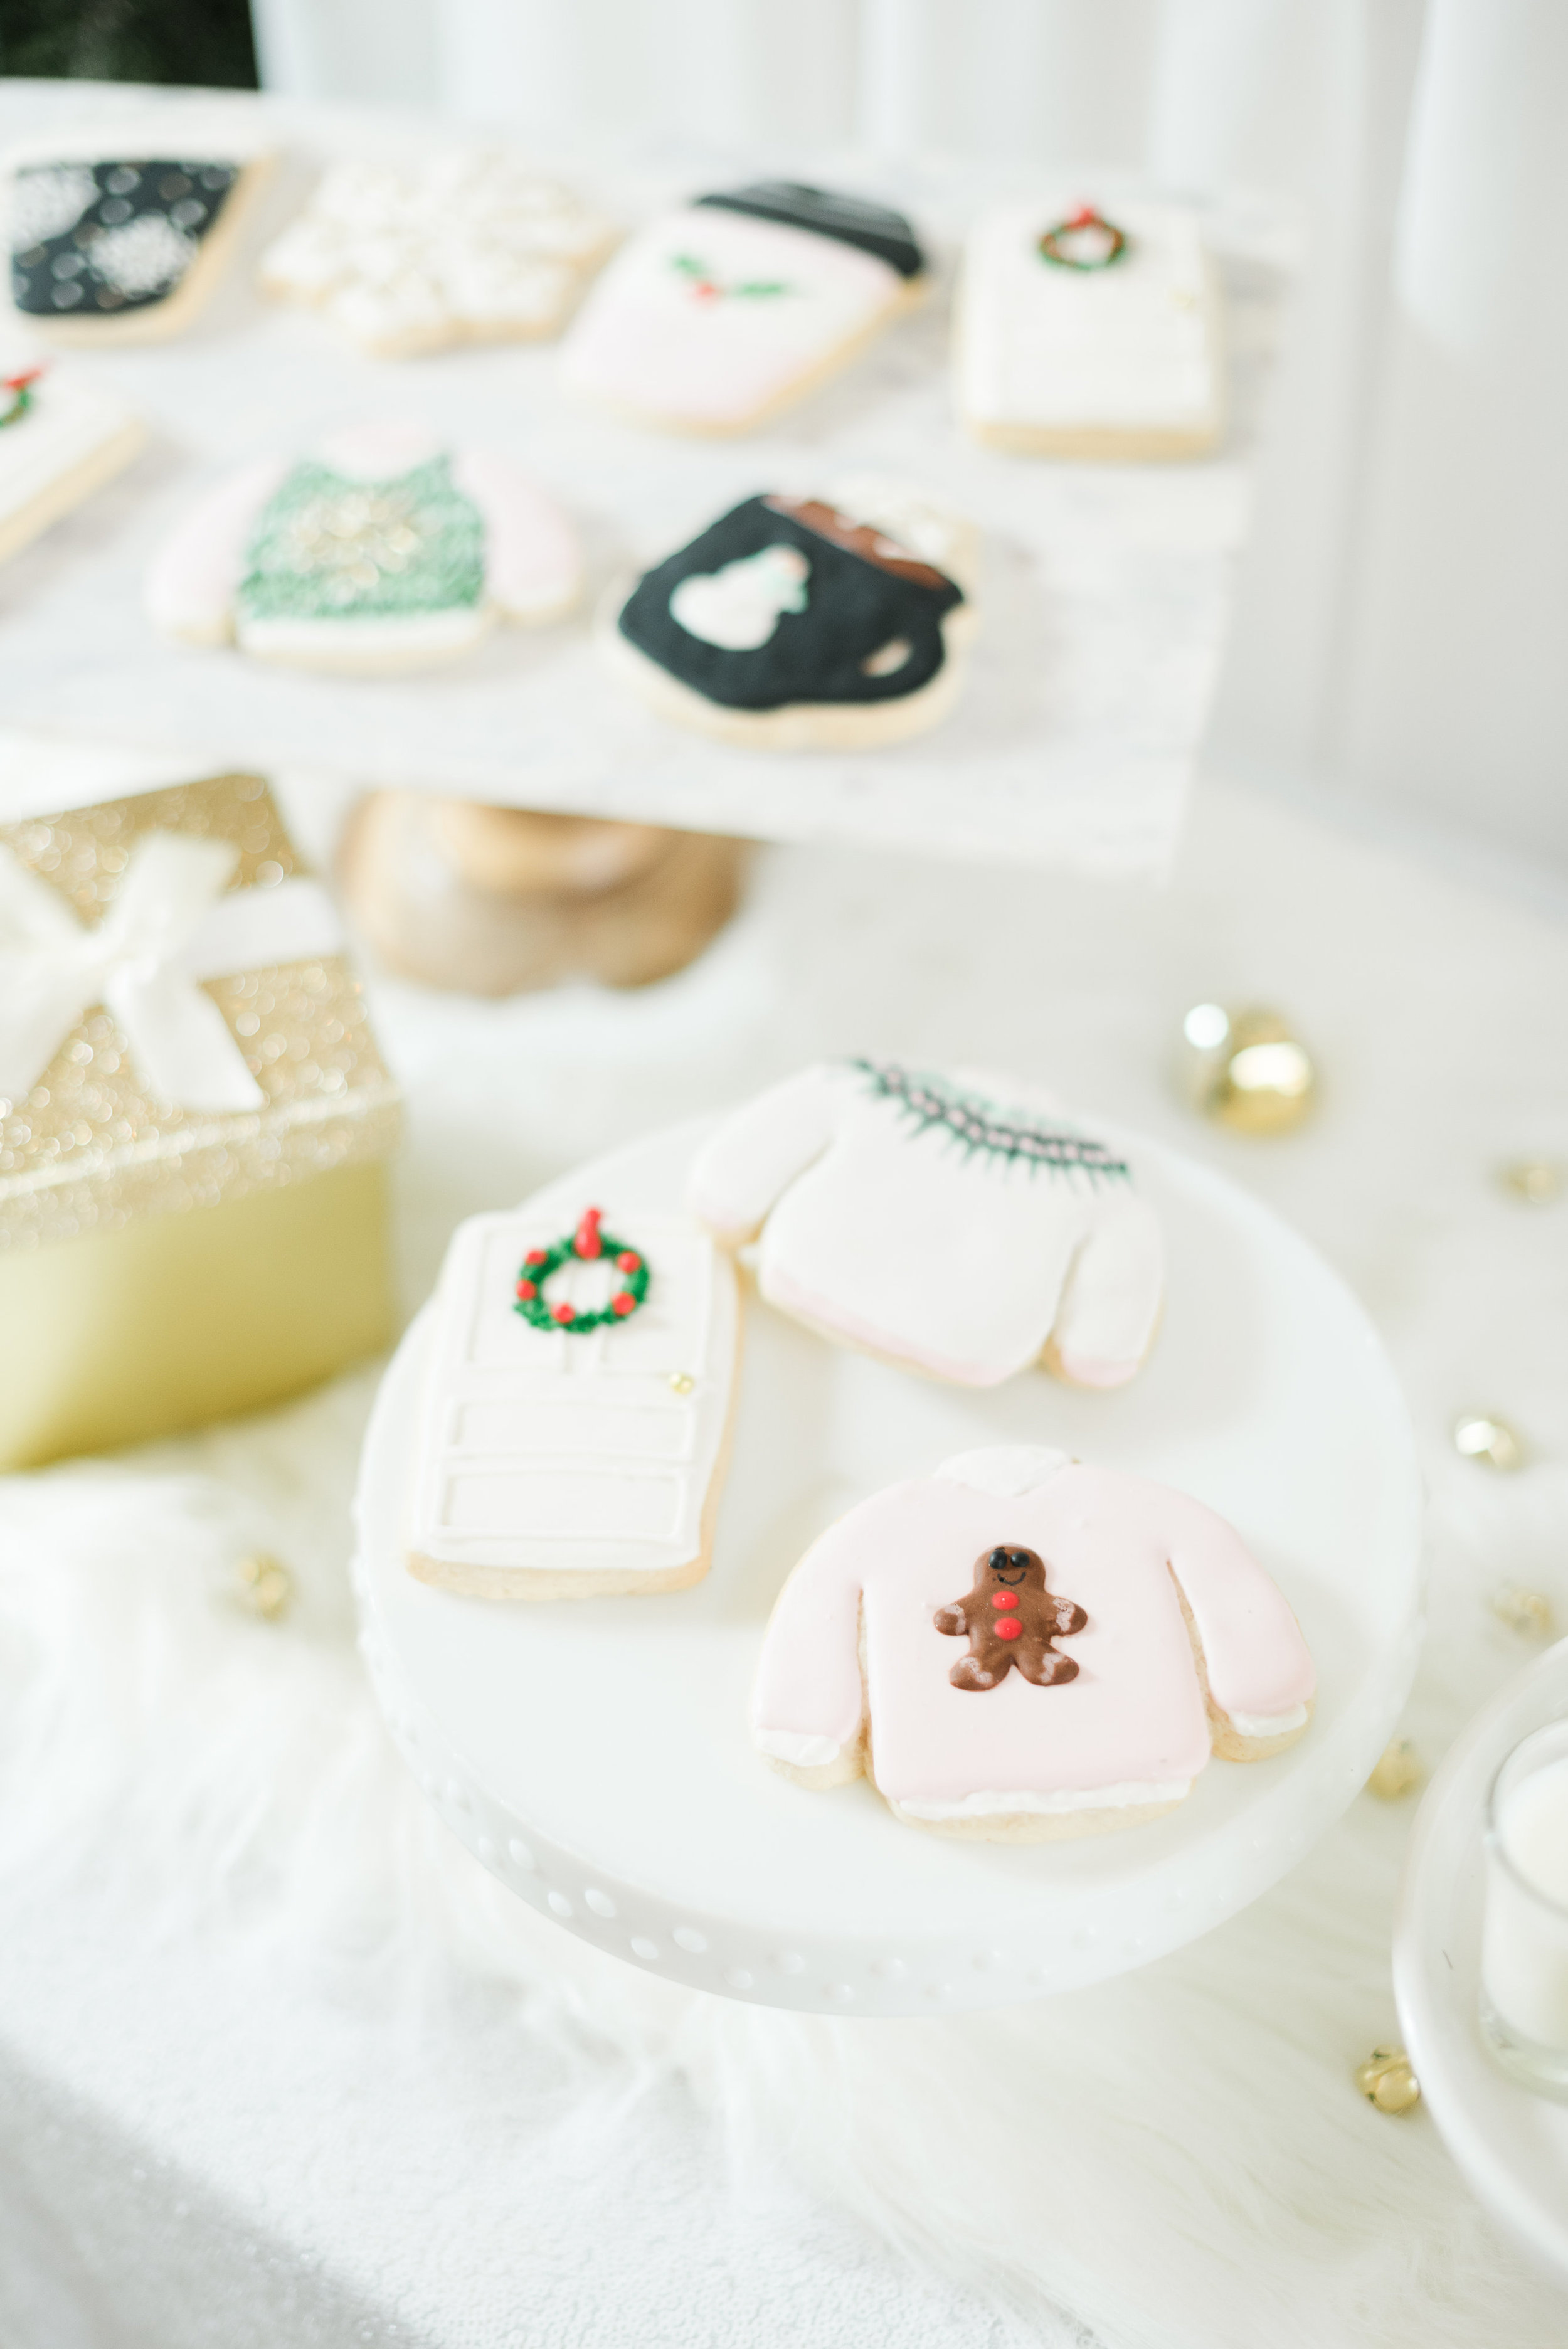 A-Glam-Christmas-Dessert-Bar-With-The-Cutest-Holiday-Sugar-Cookies